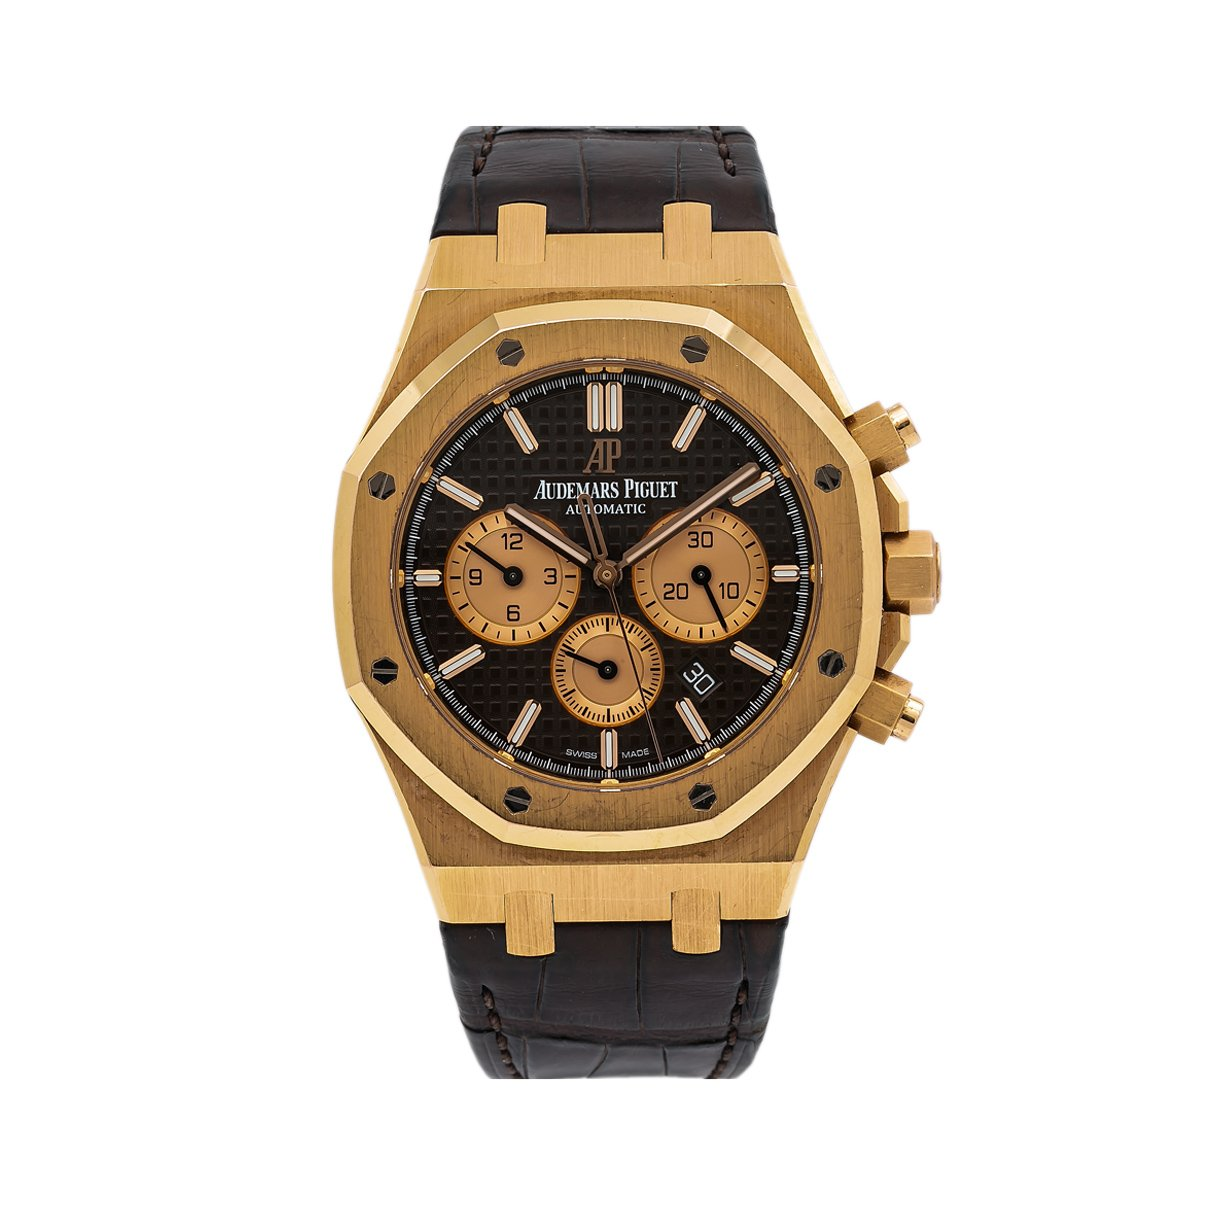 Audemars Piguet Royal Oak Chronograph 26331OR 41MM Black Dial With Leather Bracelet